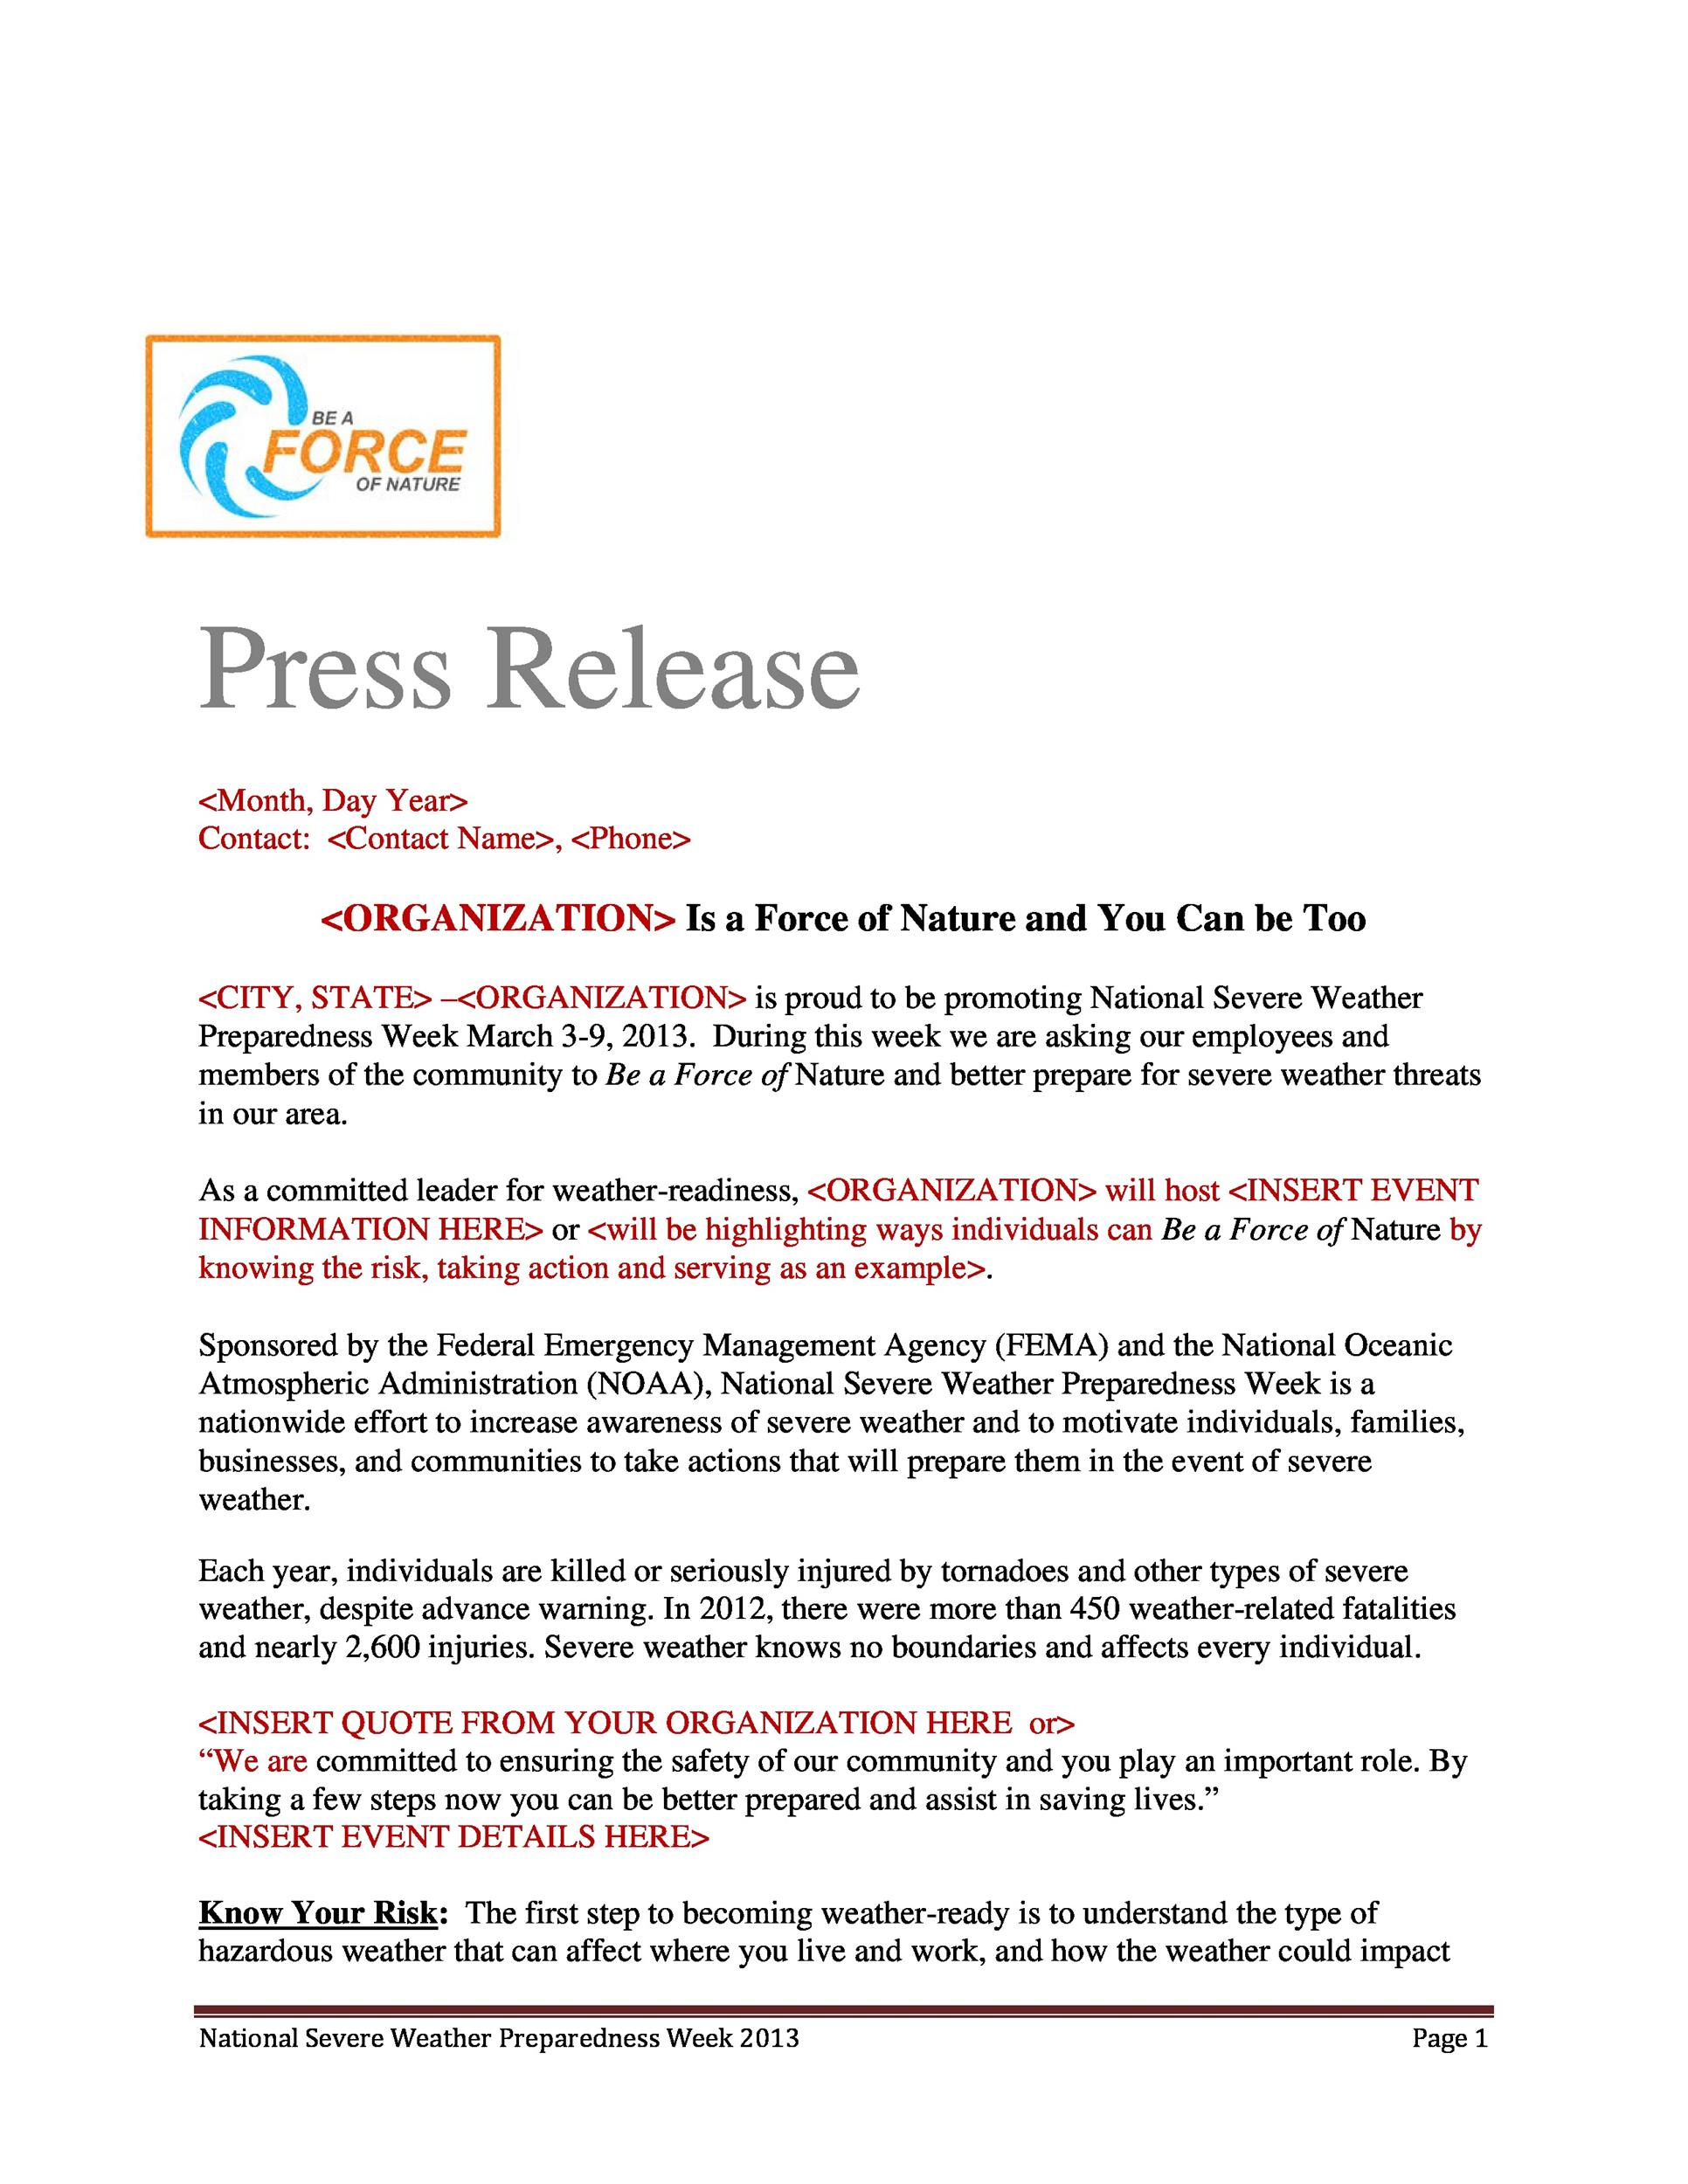 Free Press release template 17